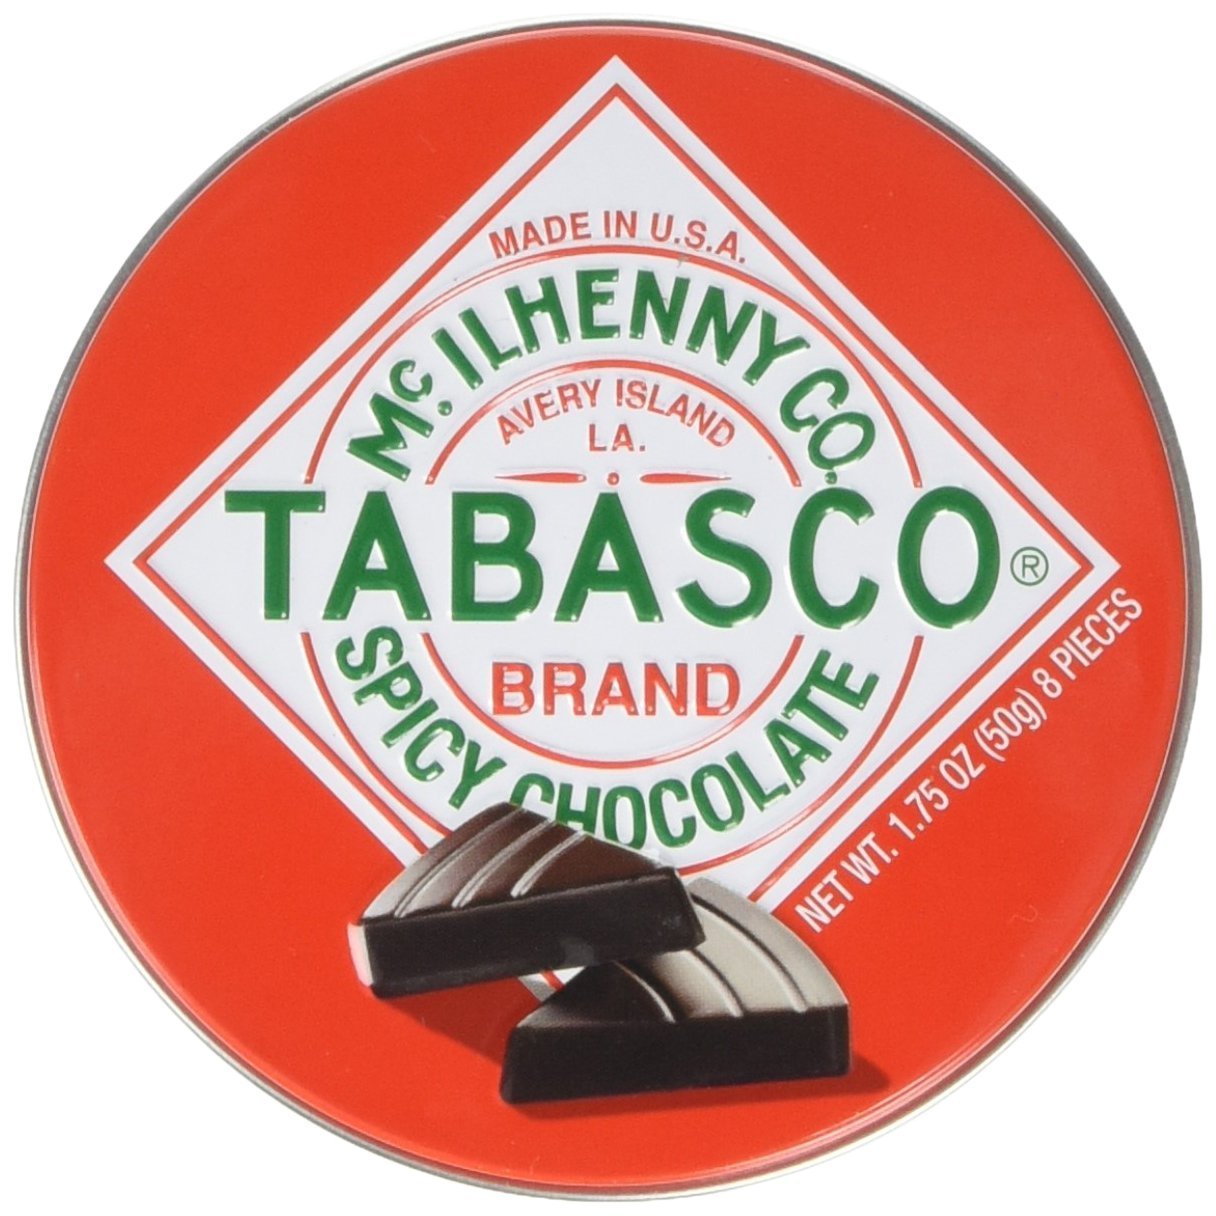 A tin of spicy Tabasco chocolate